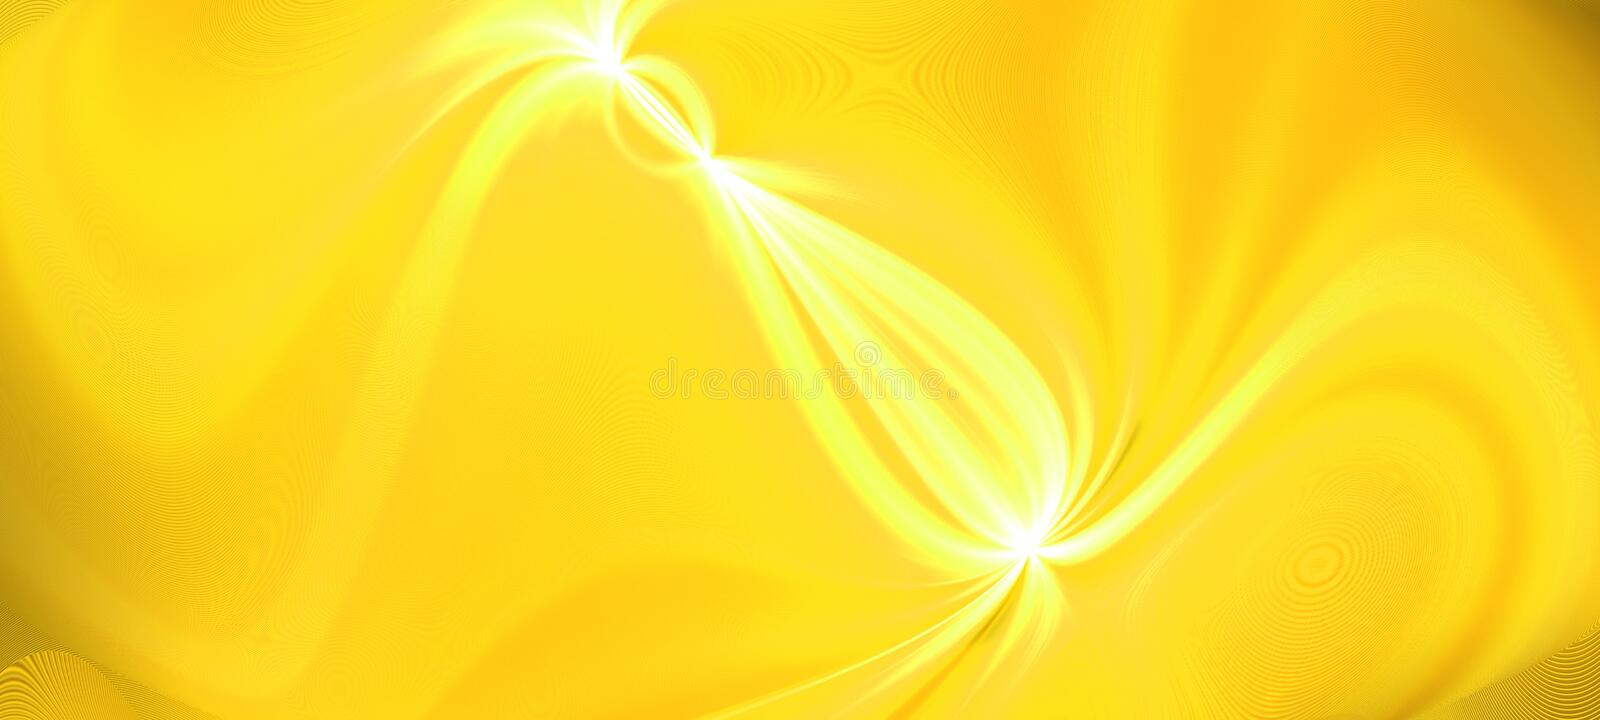 Bright gold glow flux effect wave. Dynamic motion energy. Design template illustration. Panoramic image. Modern gradient backgroun stock photo